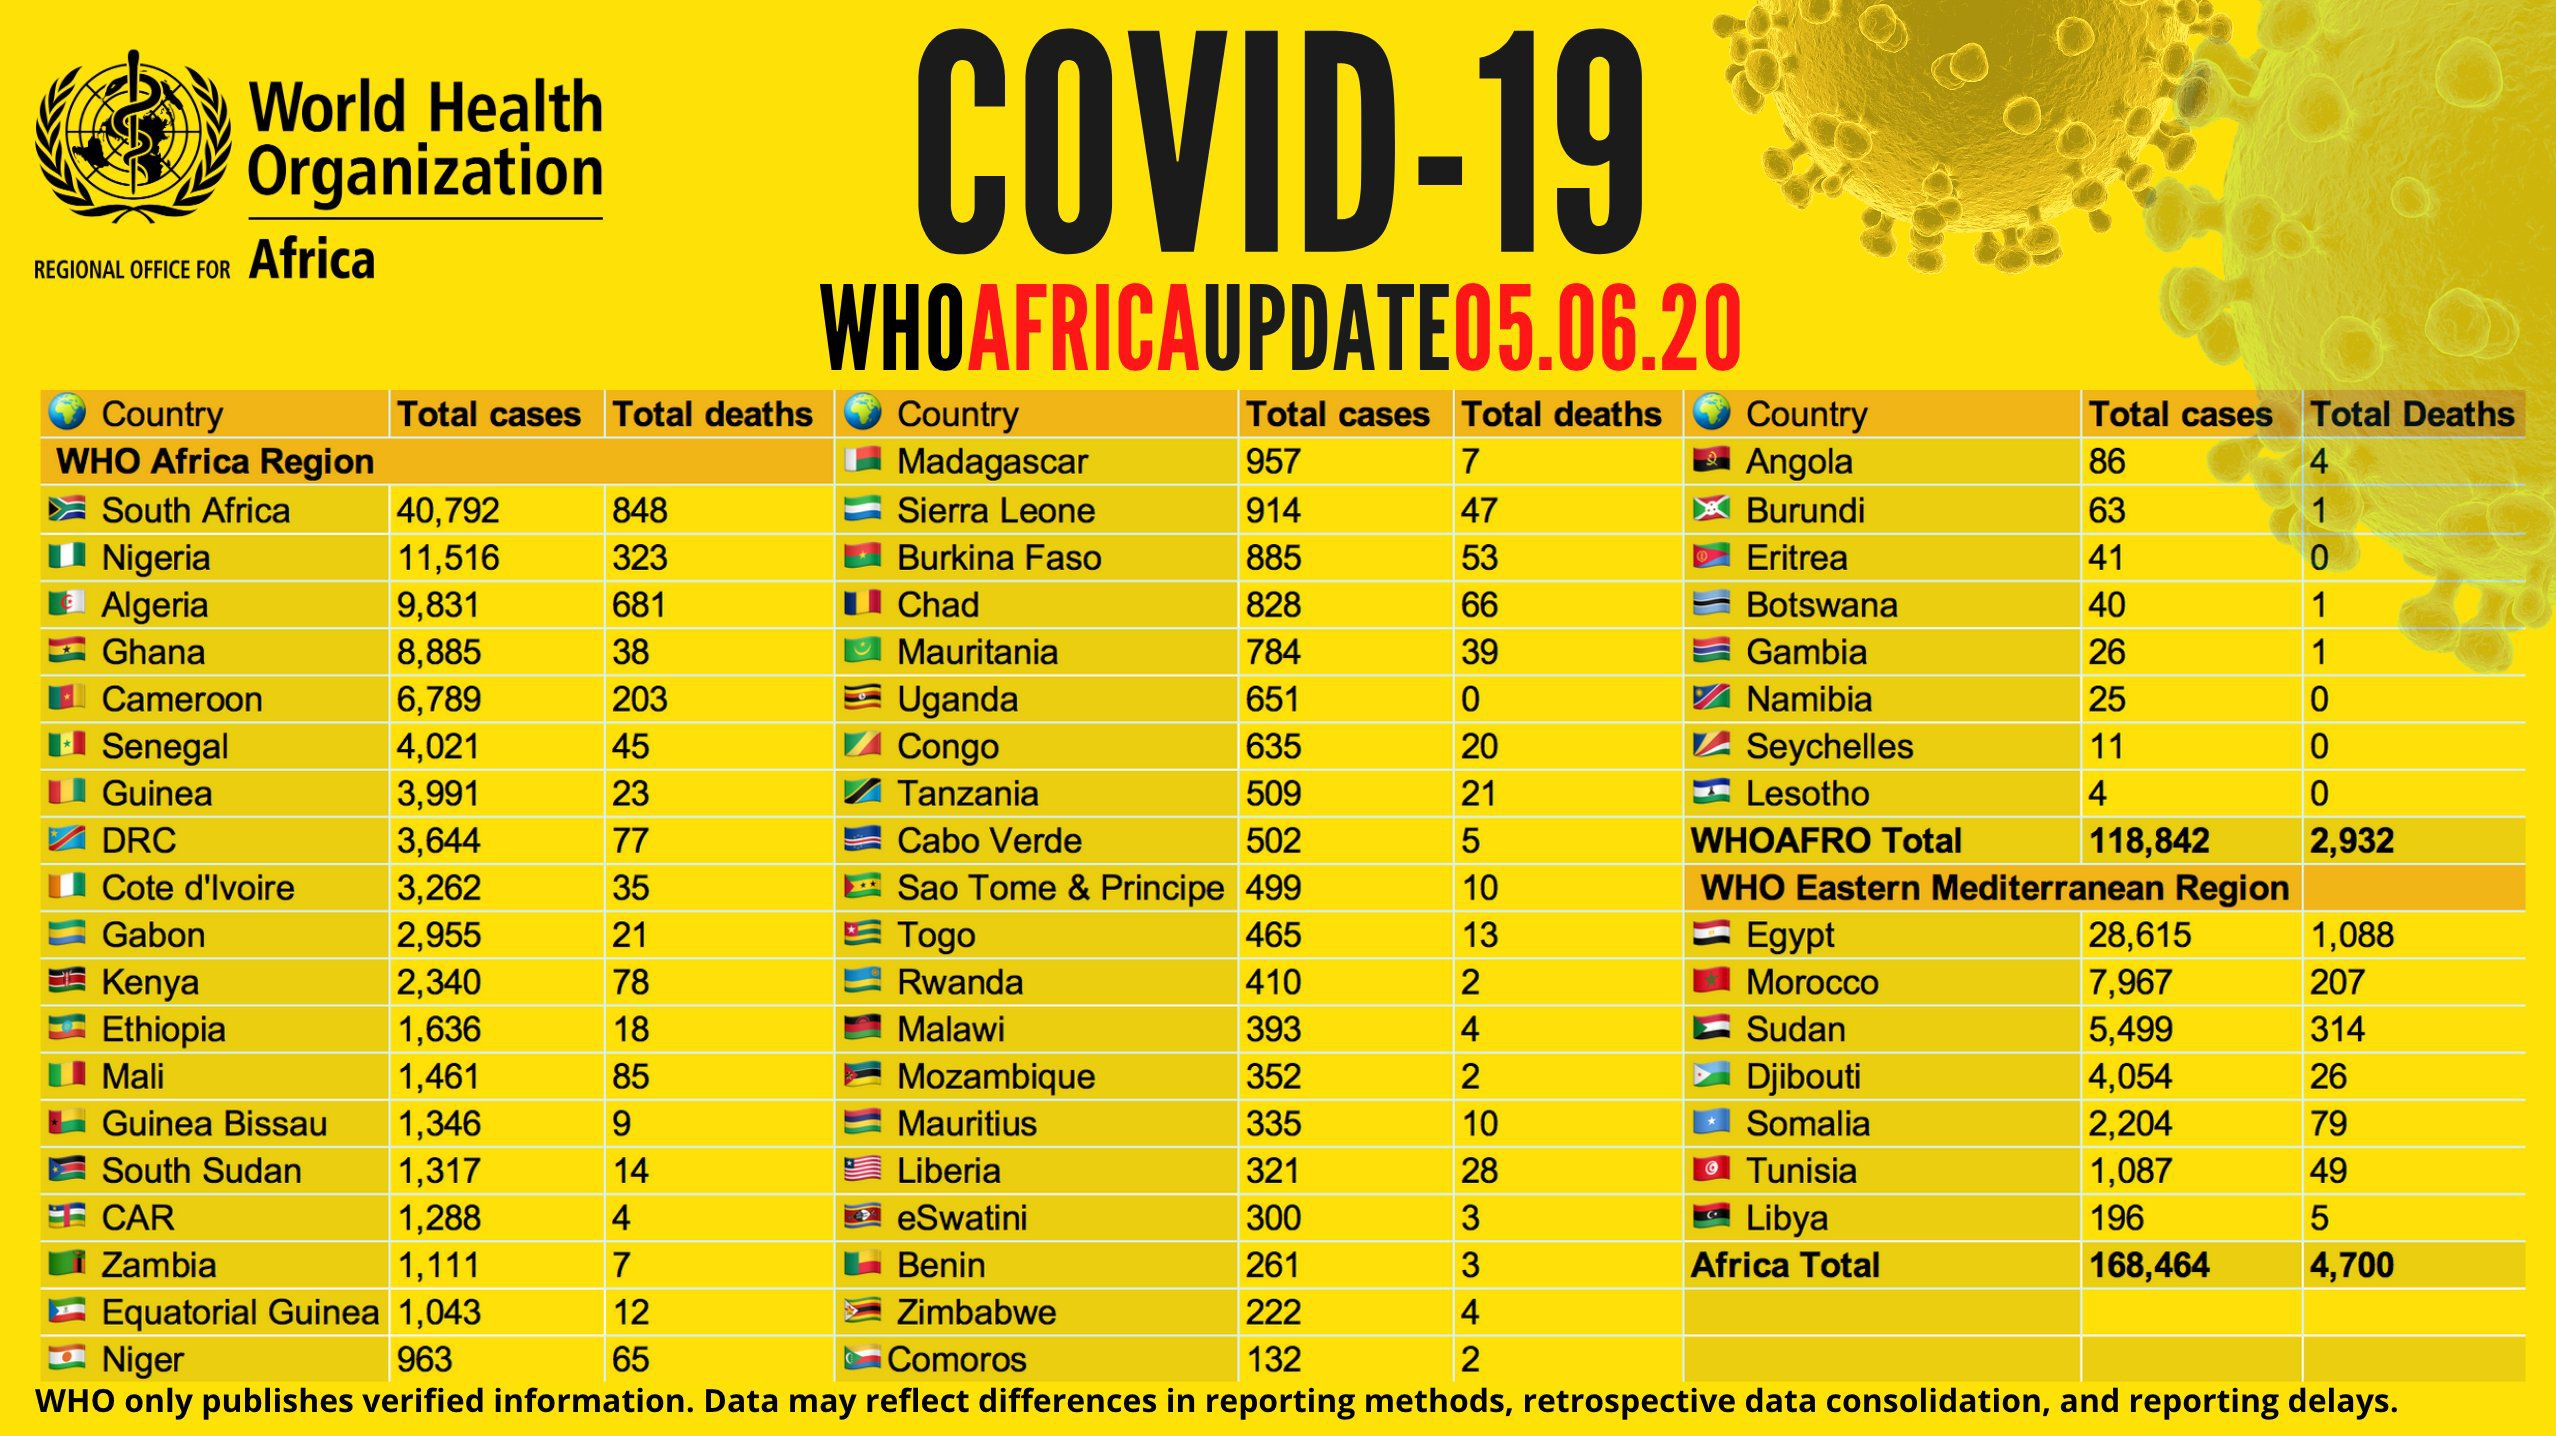 COVID-19 Cases In Africa Exceed 168,000— 4,700 Deaths Recorded